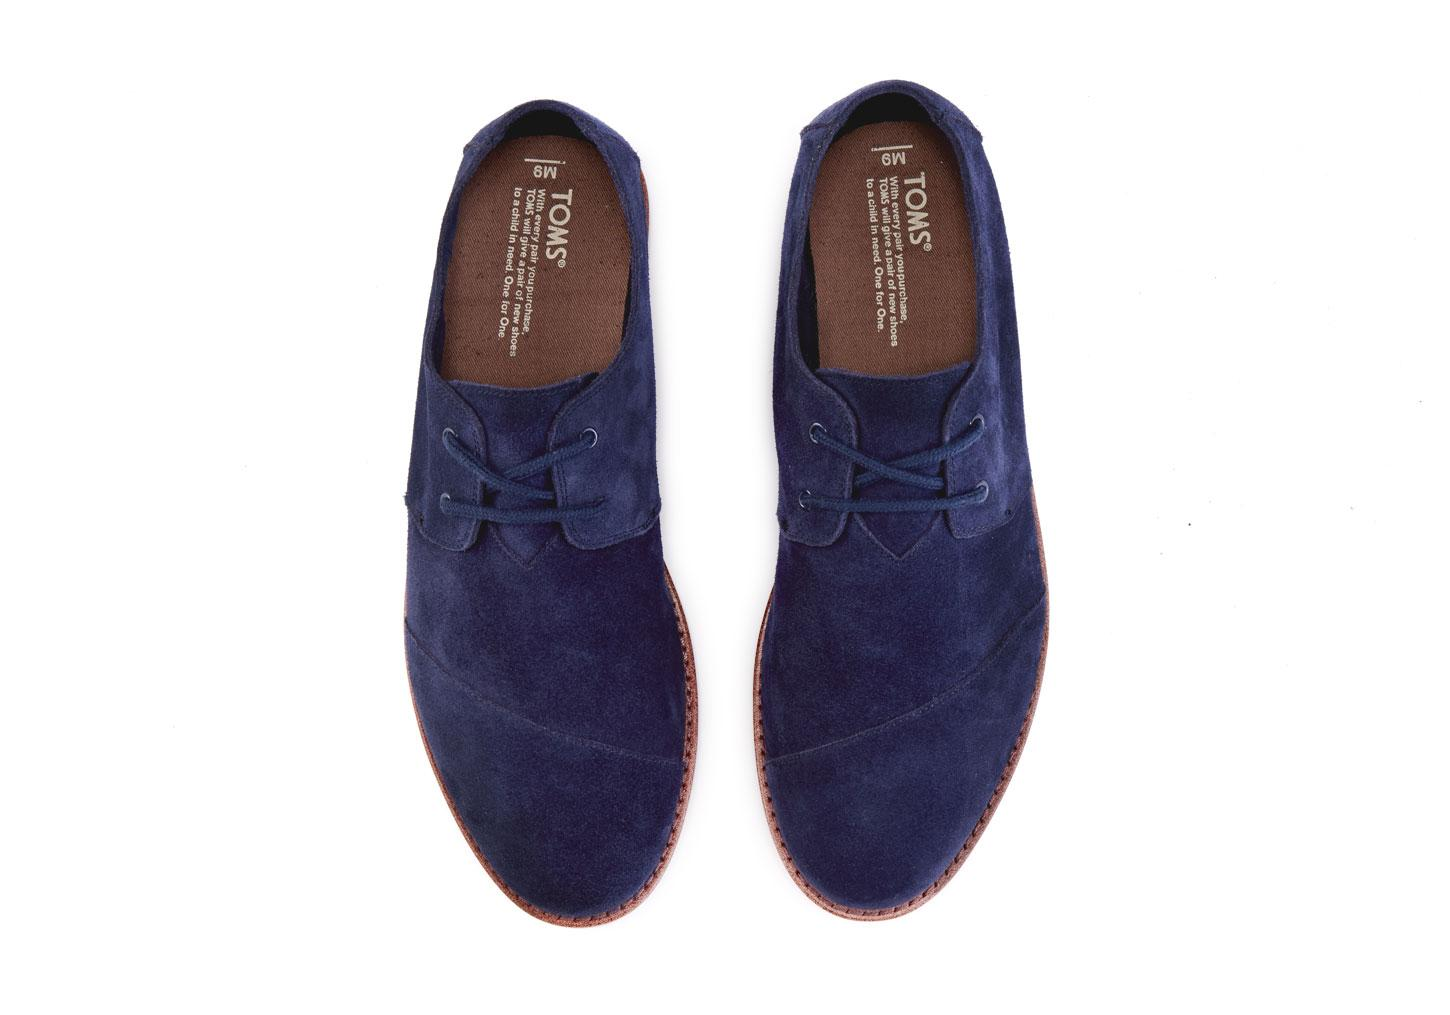 Cole Haan Shoes Run True To Size